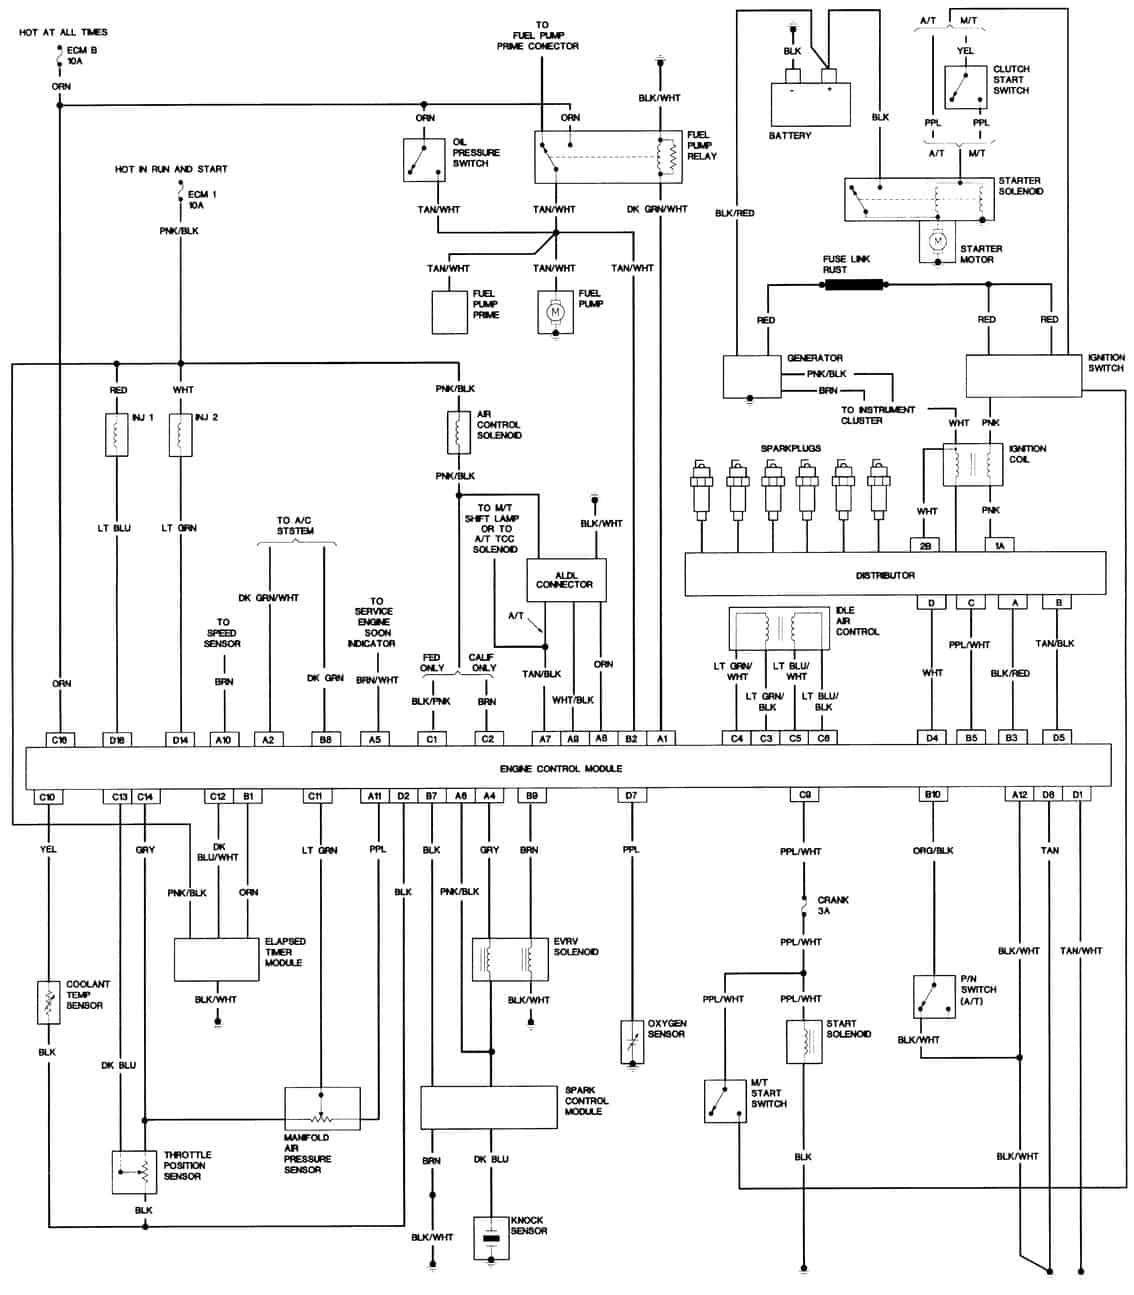 auto repair questions archives - page 99 of 424 ... toyota 3 4 v6 engine belt diagrams 85 s10 v6 engine wiring diagrams #5